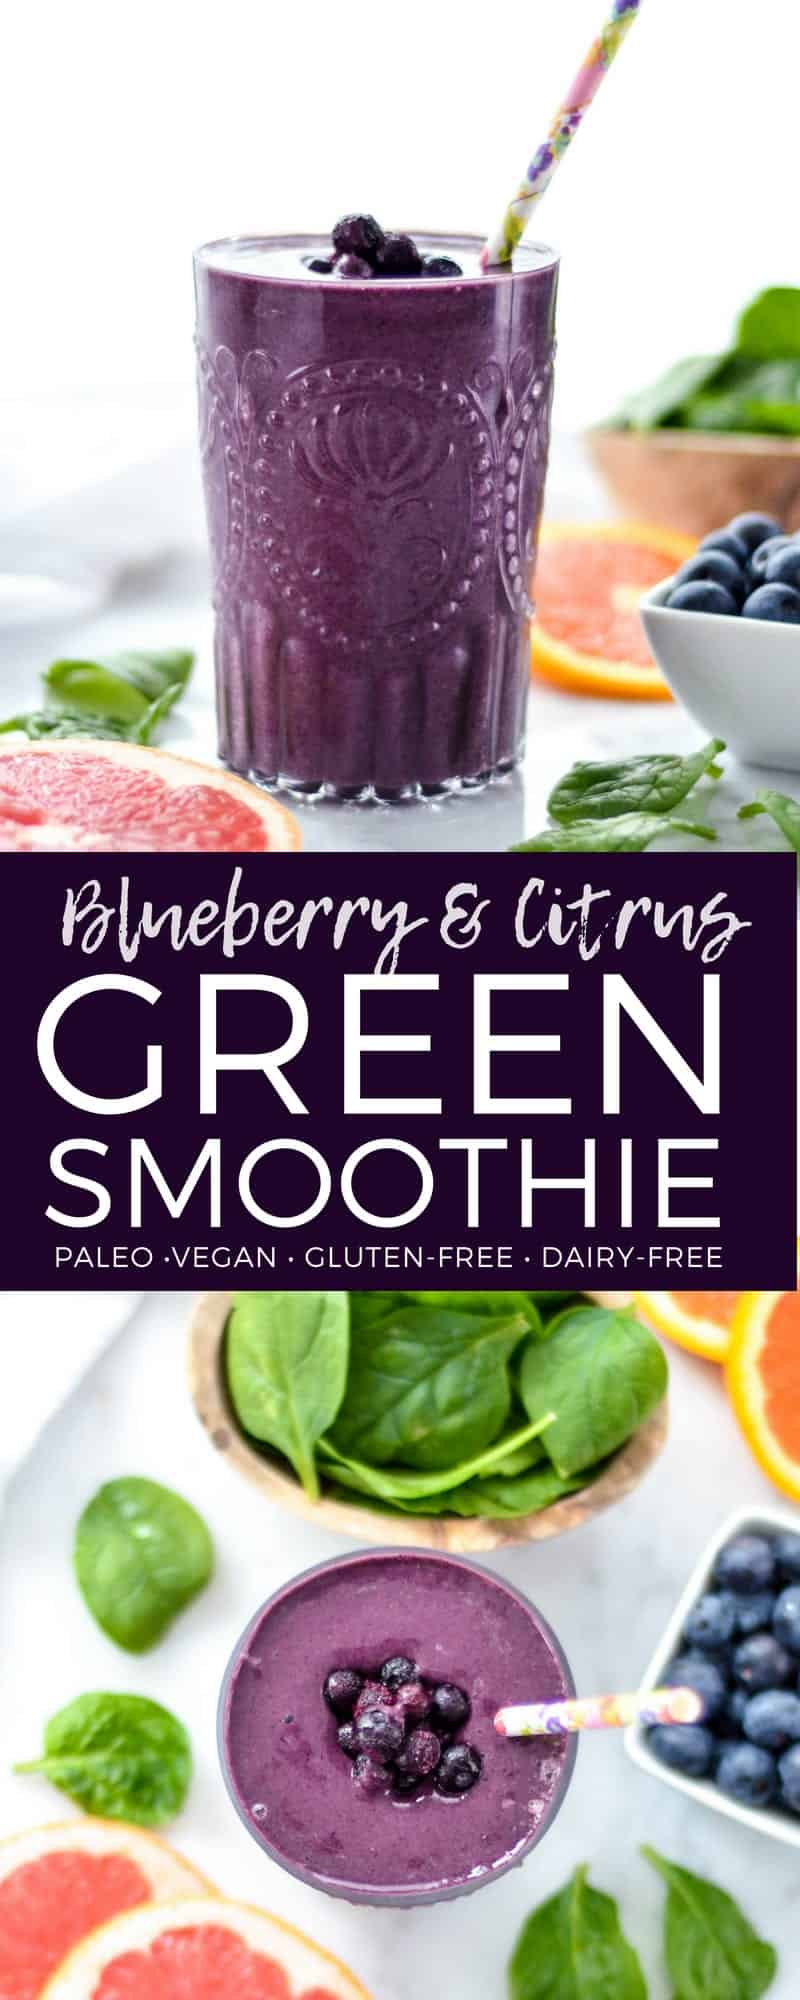 This Blueberry Citrus Green Smoothie is made with only 7 ingredients and is ready in under 5 minutes! Packed full of antioxidants and Vitamin C, this green smoothie is gluten-free, dairy-free, vegan and paleo, making it an amazing breakfast or snack! #citrus #blueberry #greensmoothie #smoothierecipe #vitamix